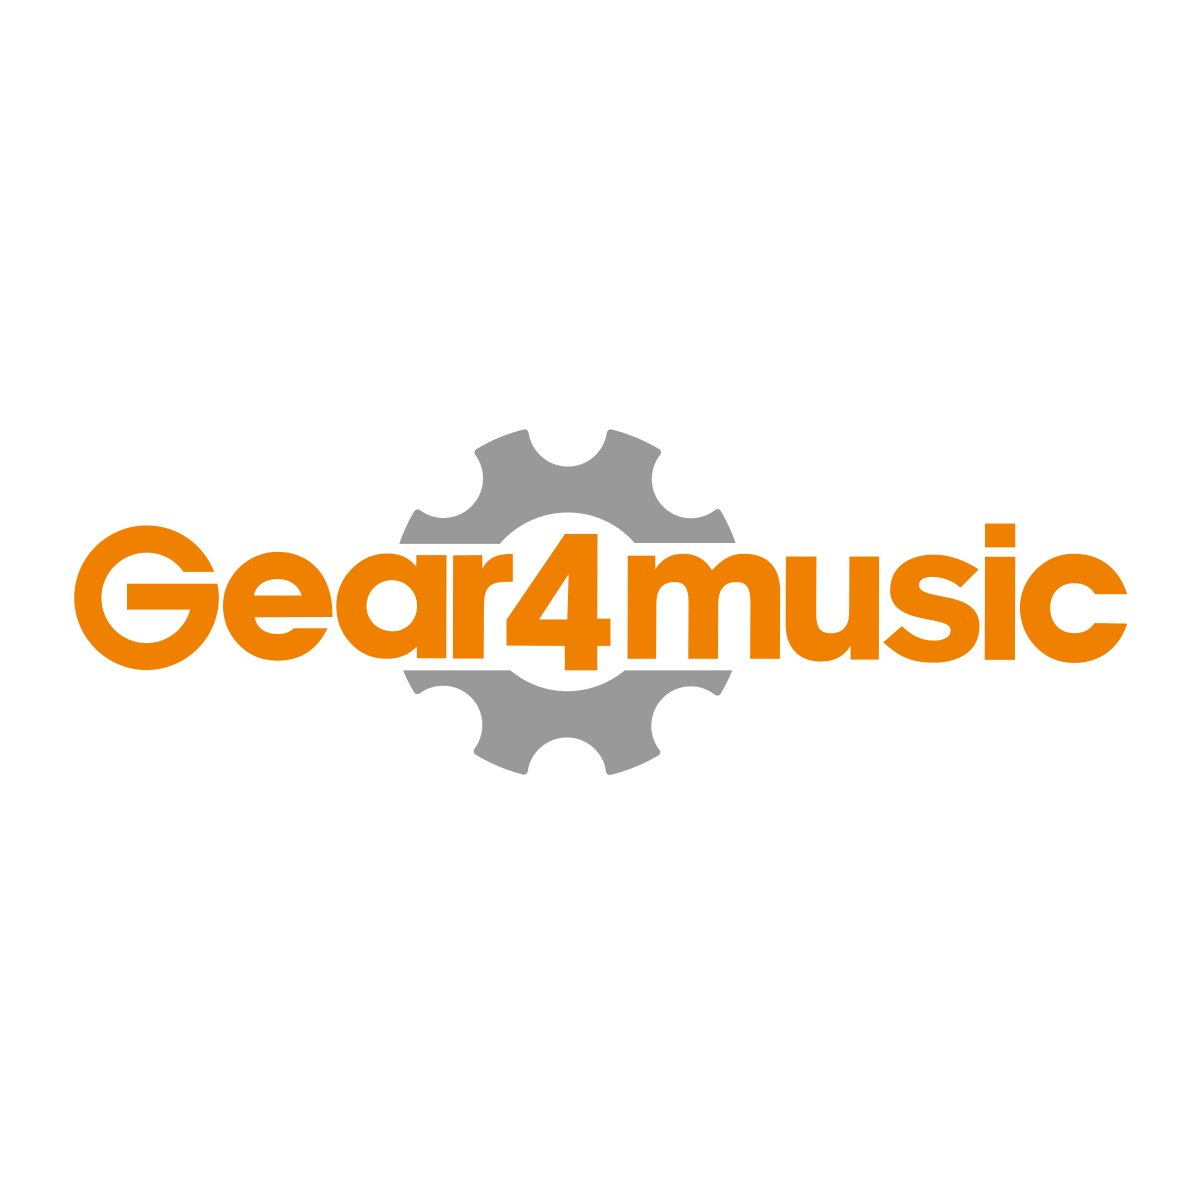 Deluxe gitaarband door Gear4music, zwart